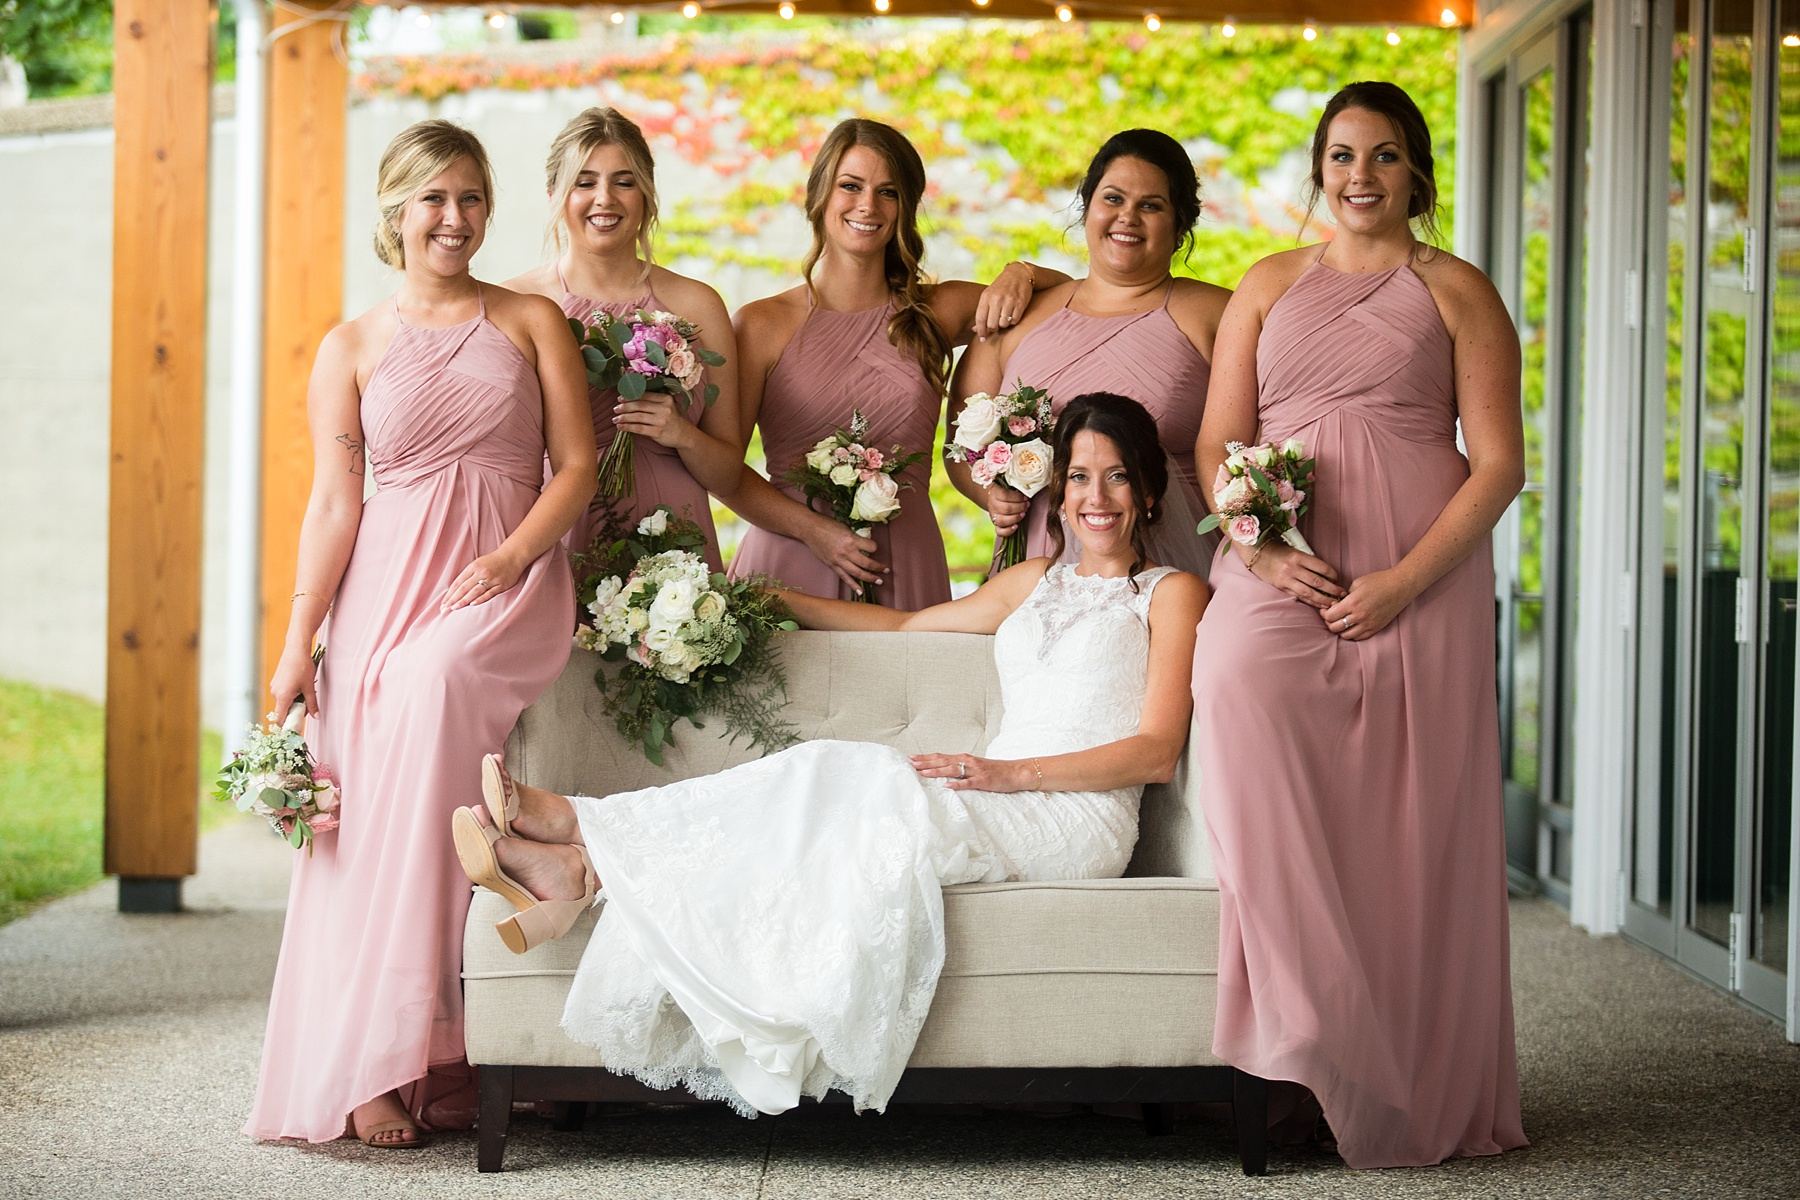 Brandon_Shafer_Photography_Elizabeth_Scott_Traverse_City_Wedding_0018.jpg